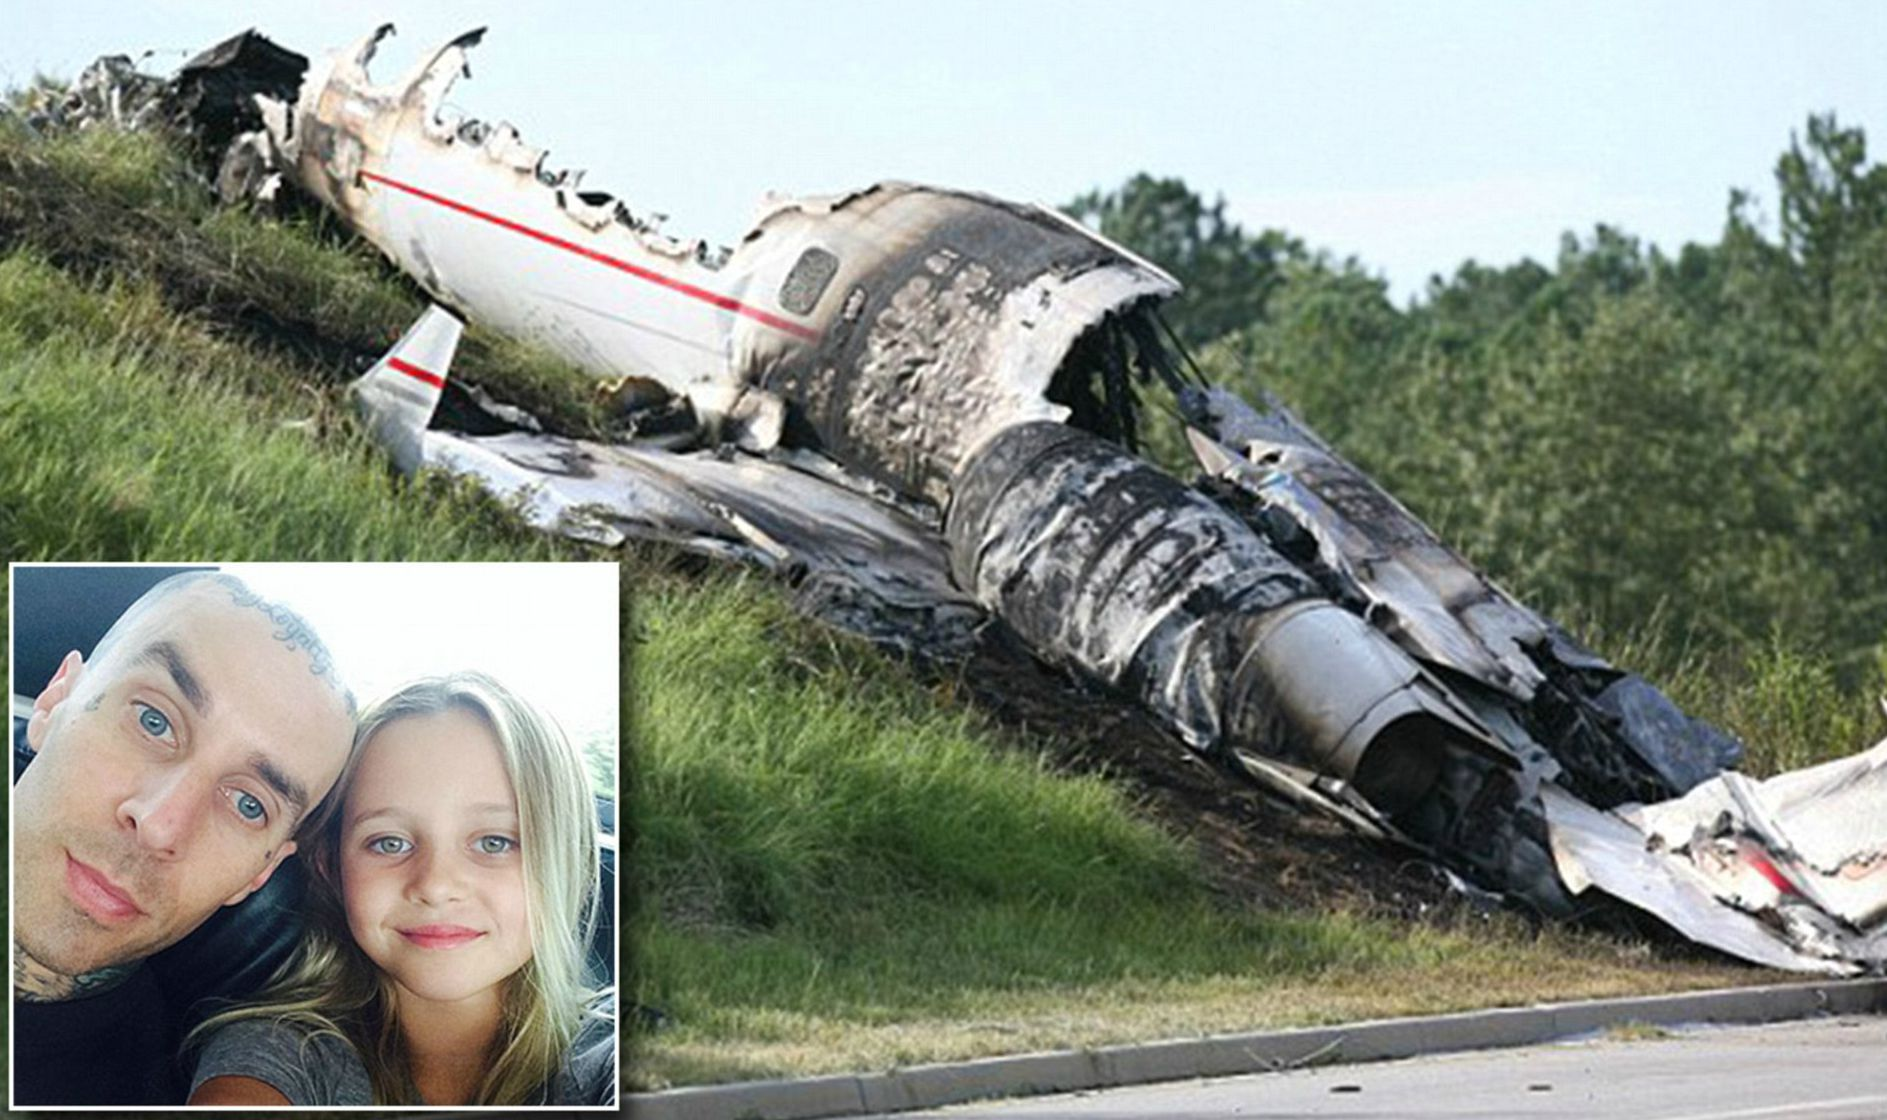 Travis Barker's plane crash